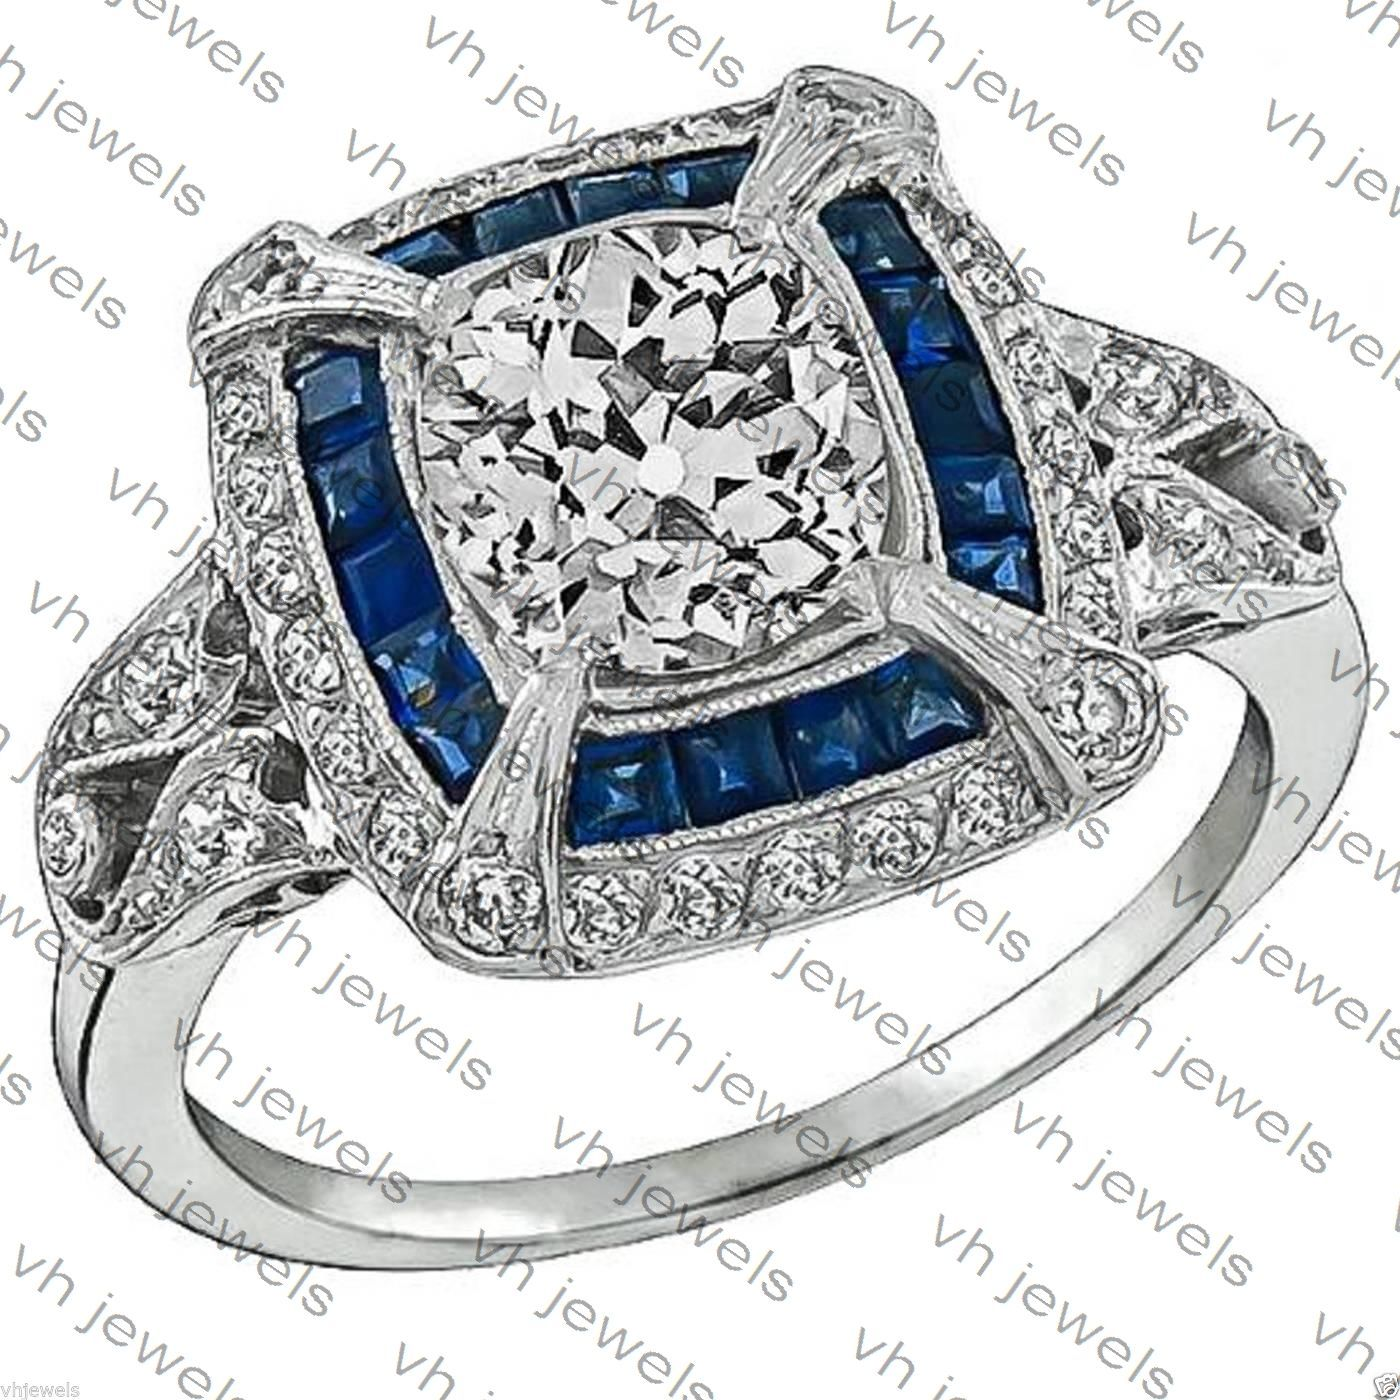 Style Solitaire. For Middle Ring Size: All the Middle Ring Sizes are also available in between 4.00 To 12.00. At Vh Jewels, we understand that your jewels are more than just accessories; they are an extension of your personality. | eBay!